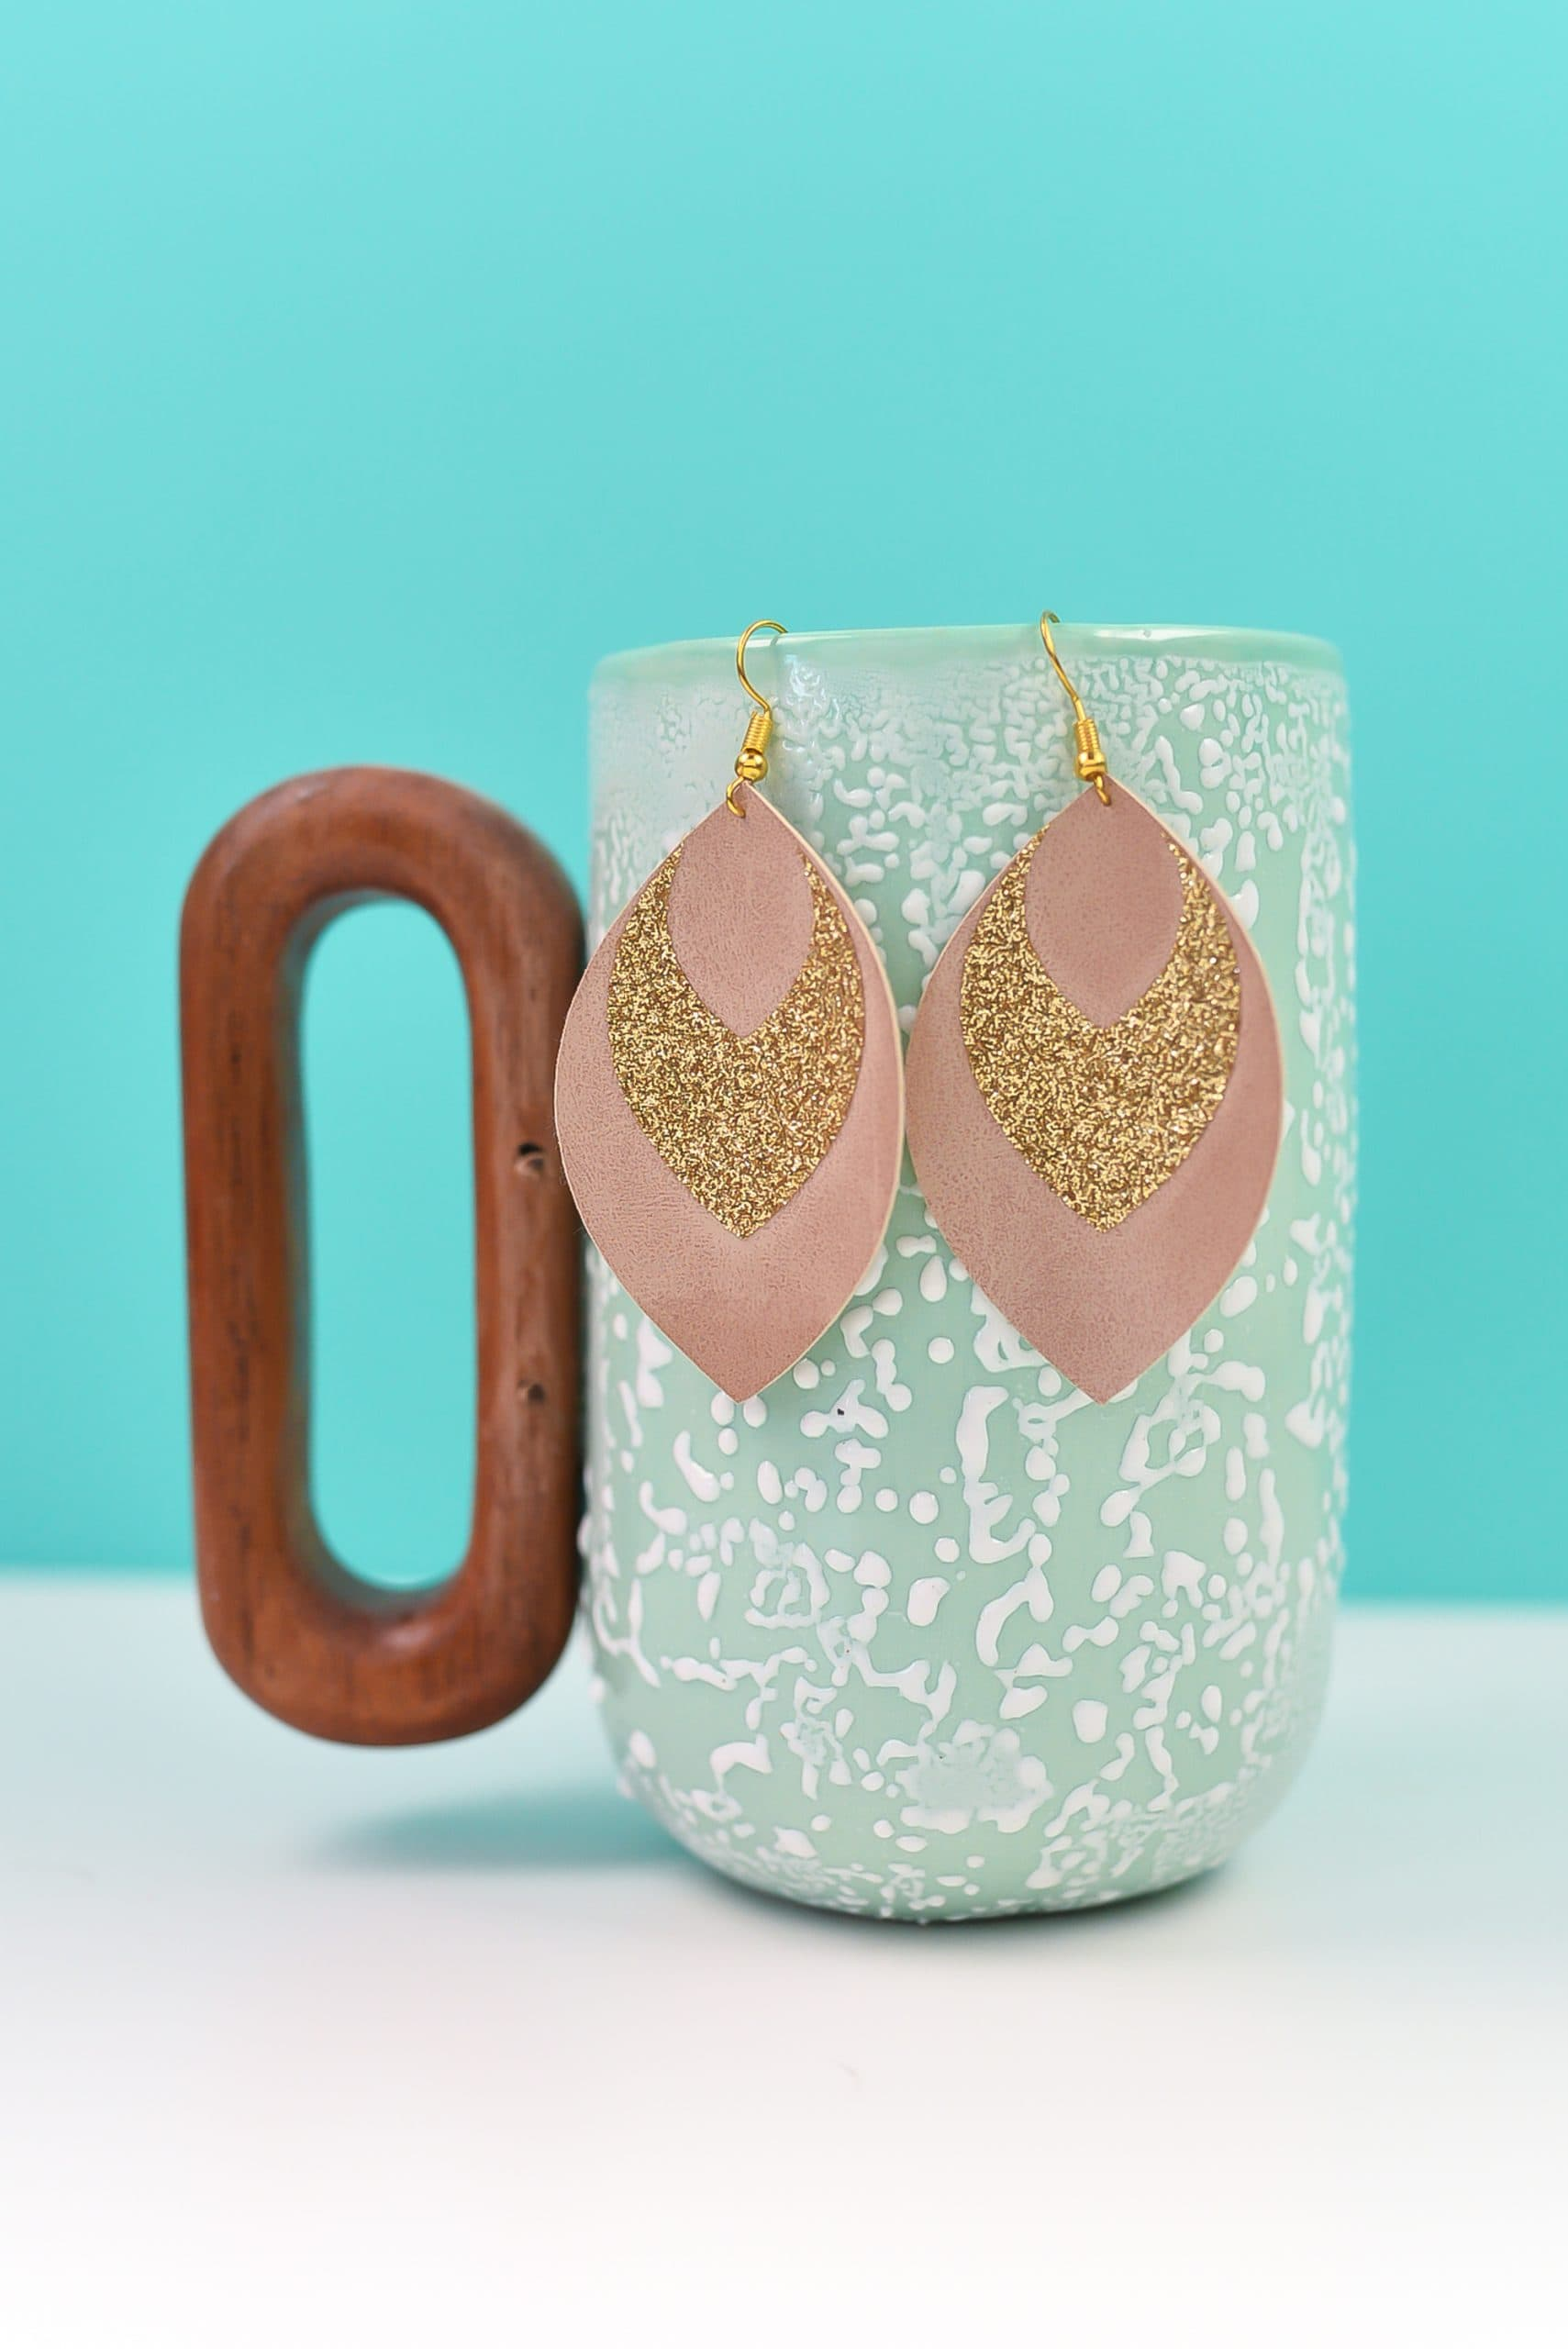 leather earring with glitter made with a Cricut